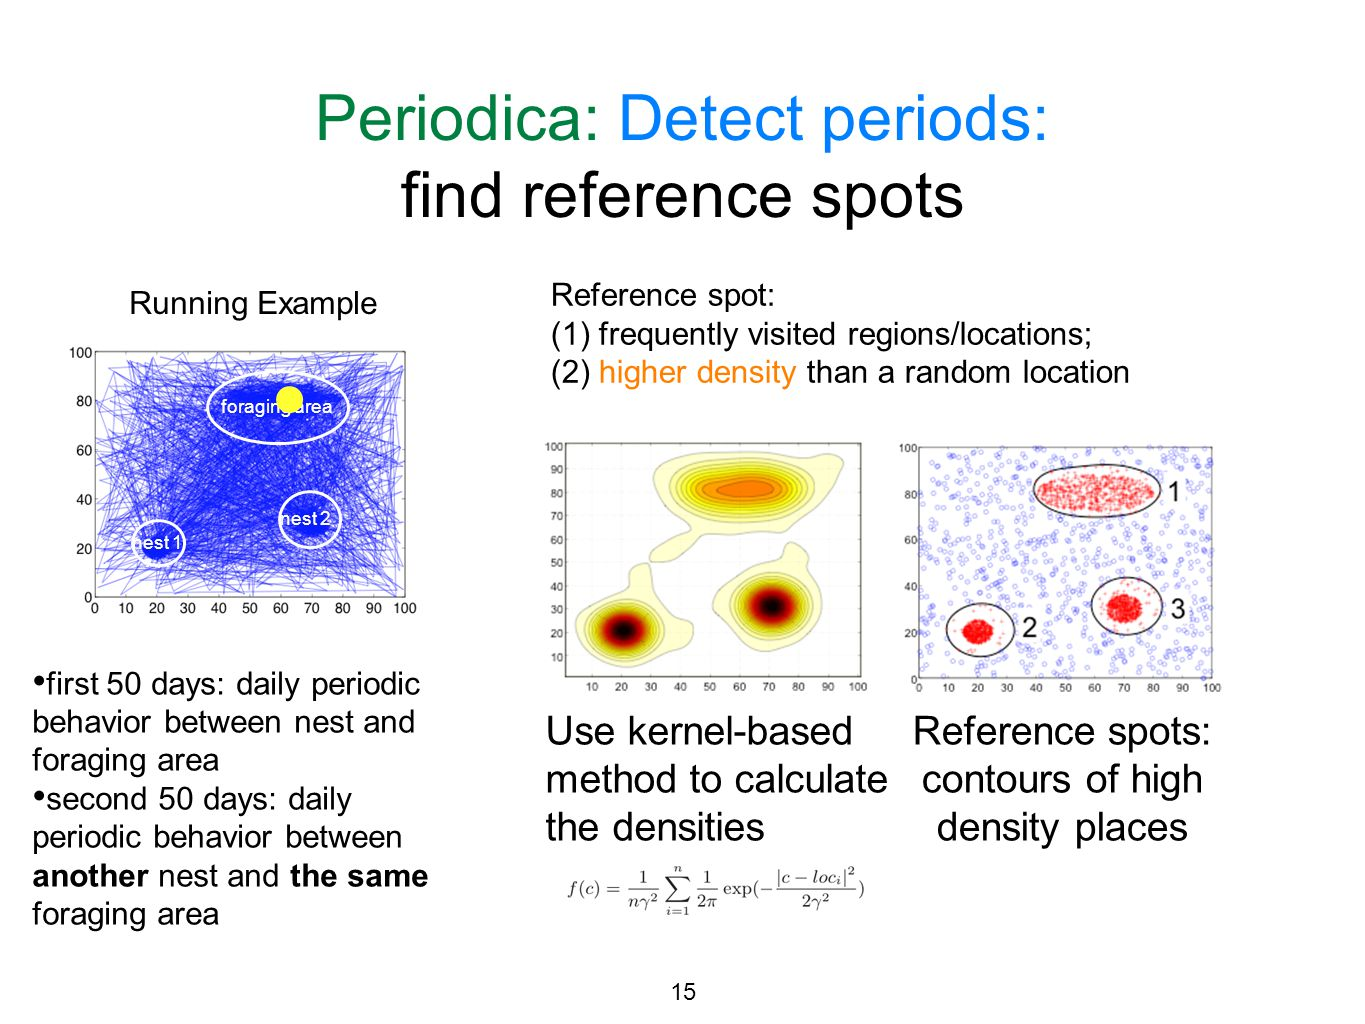 Periodica: Detect periods: find reference spots